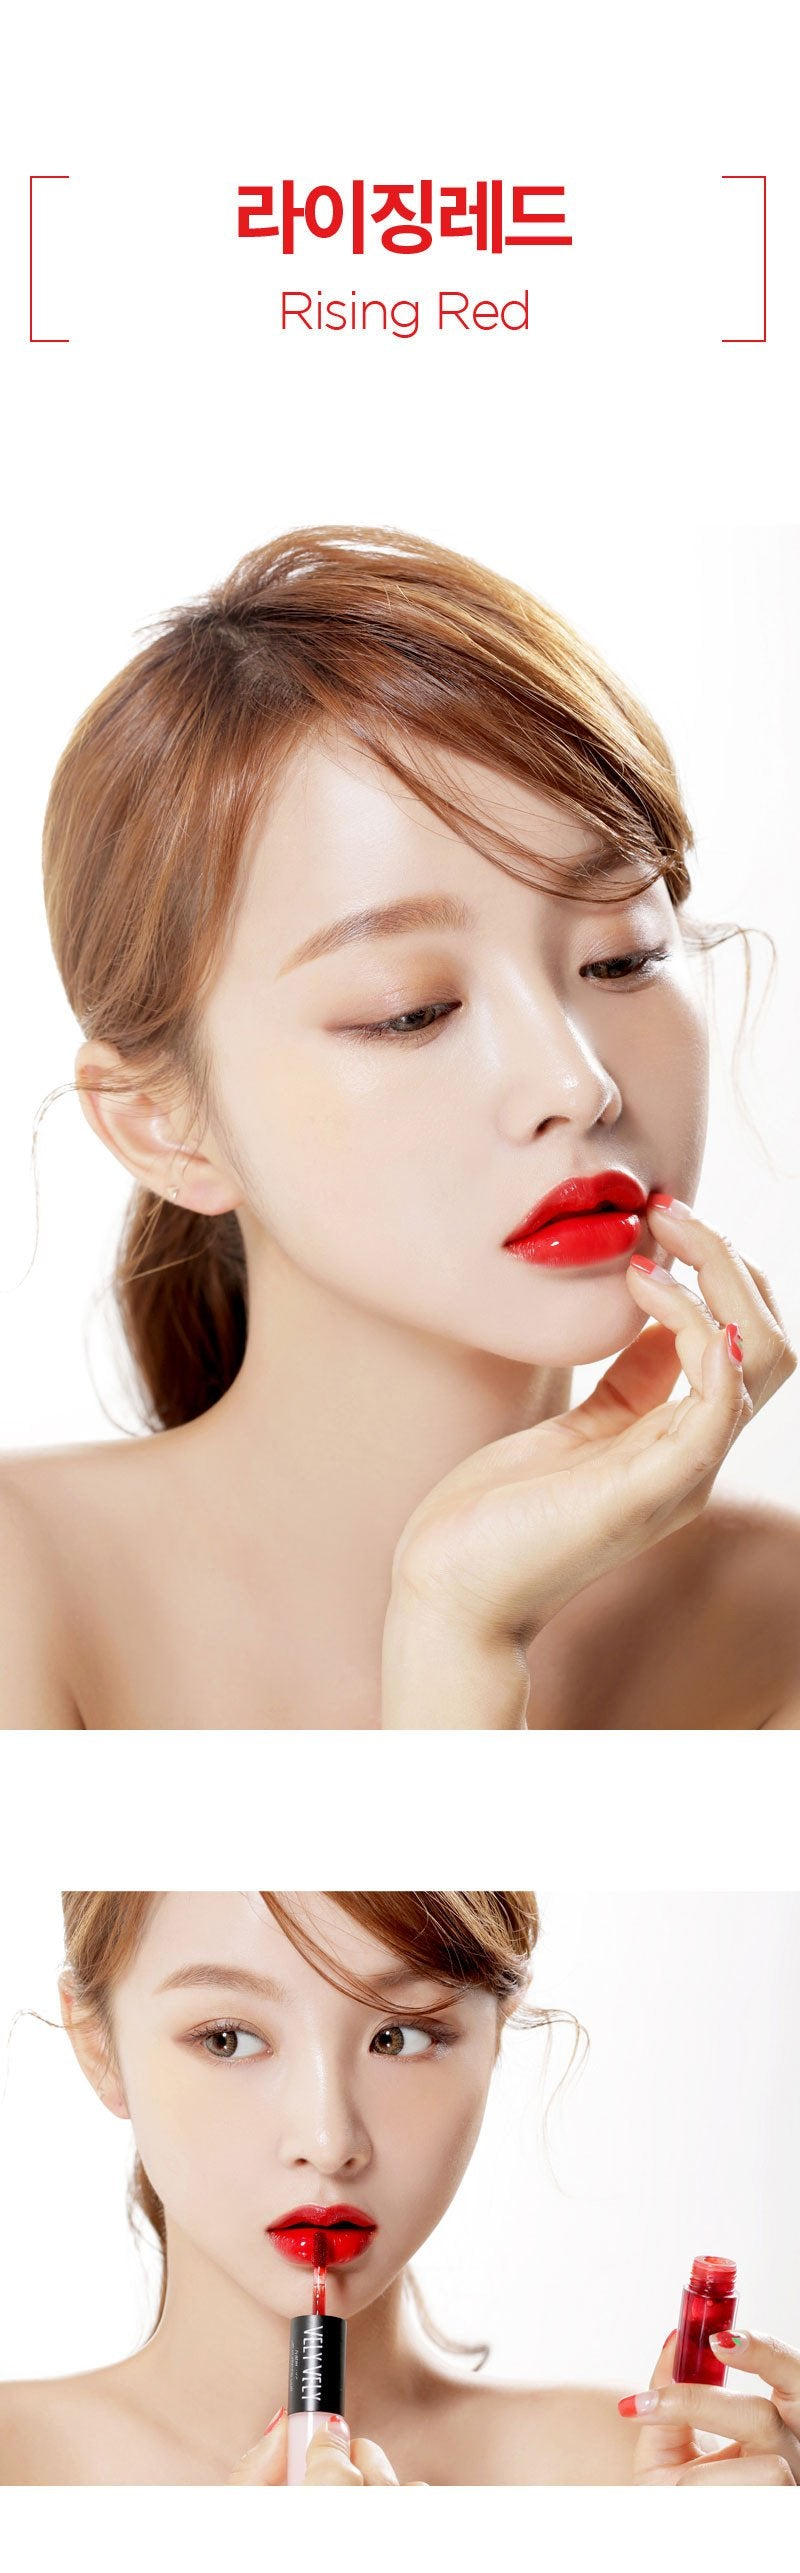 Korea's Cosmetic Brand, Vely Vely Water Tint Lip Plumping Duo in Rising Red